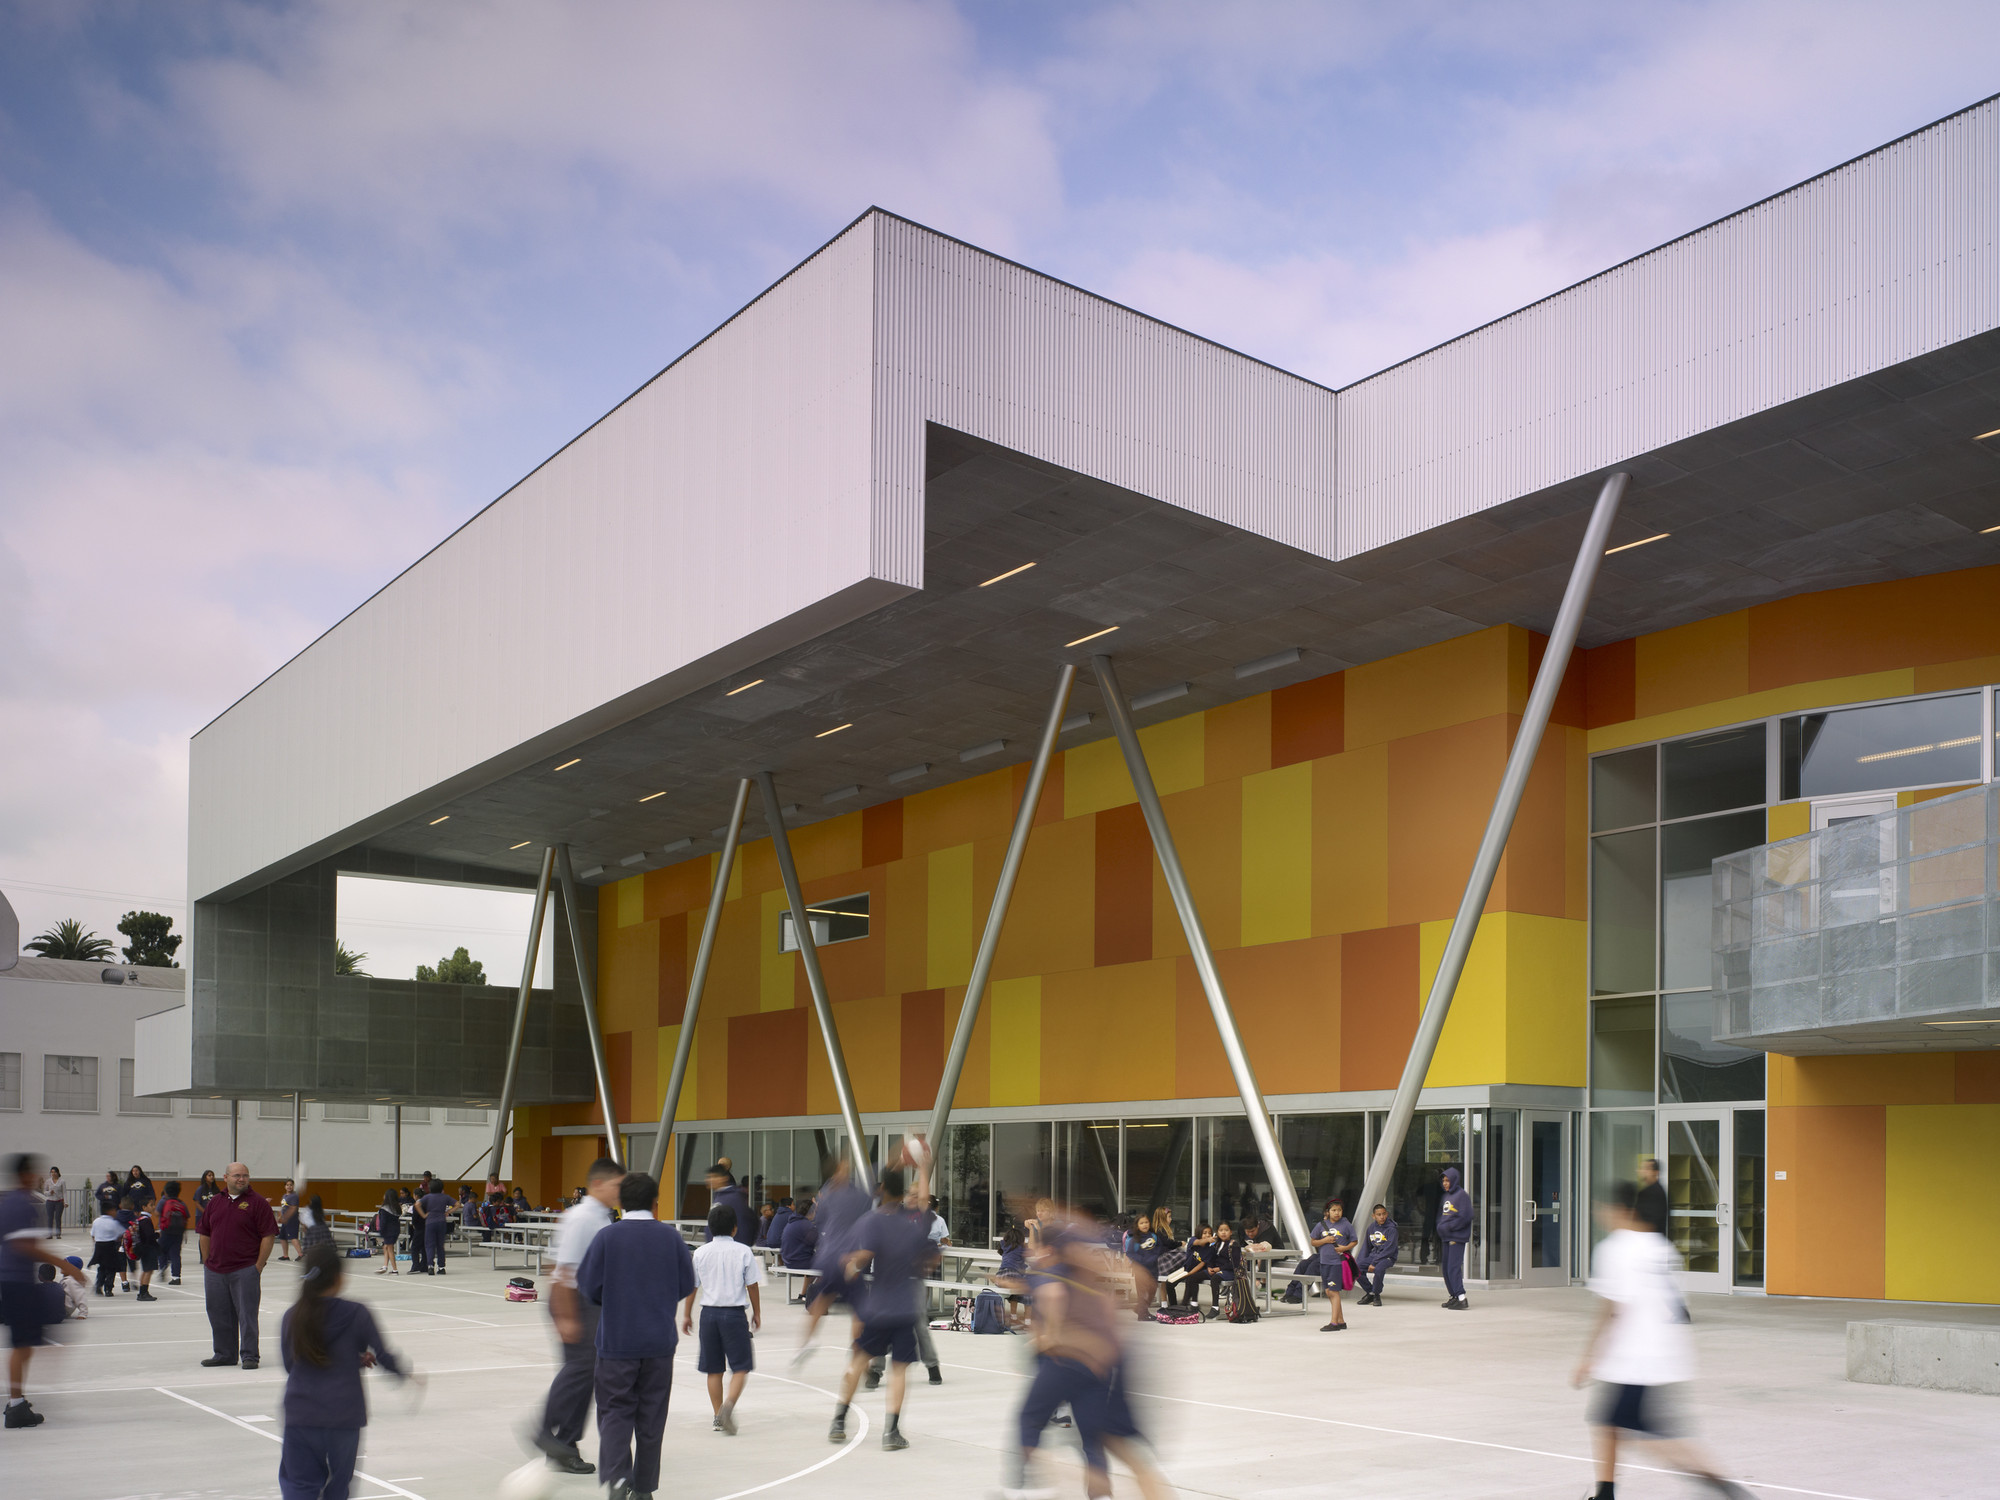 St. Thomas the Apostle School / Griffin Enright Architects, © Benny Chan